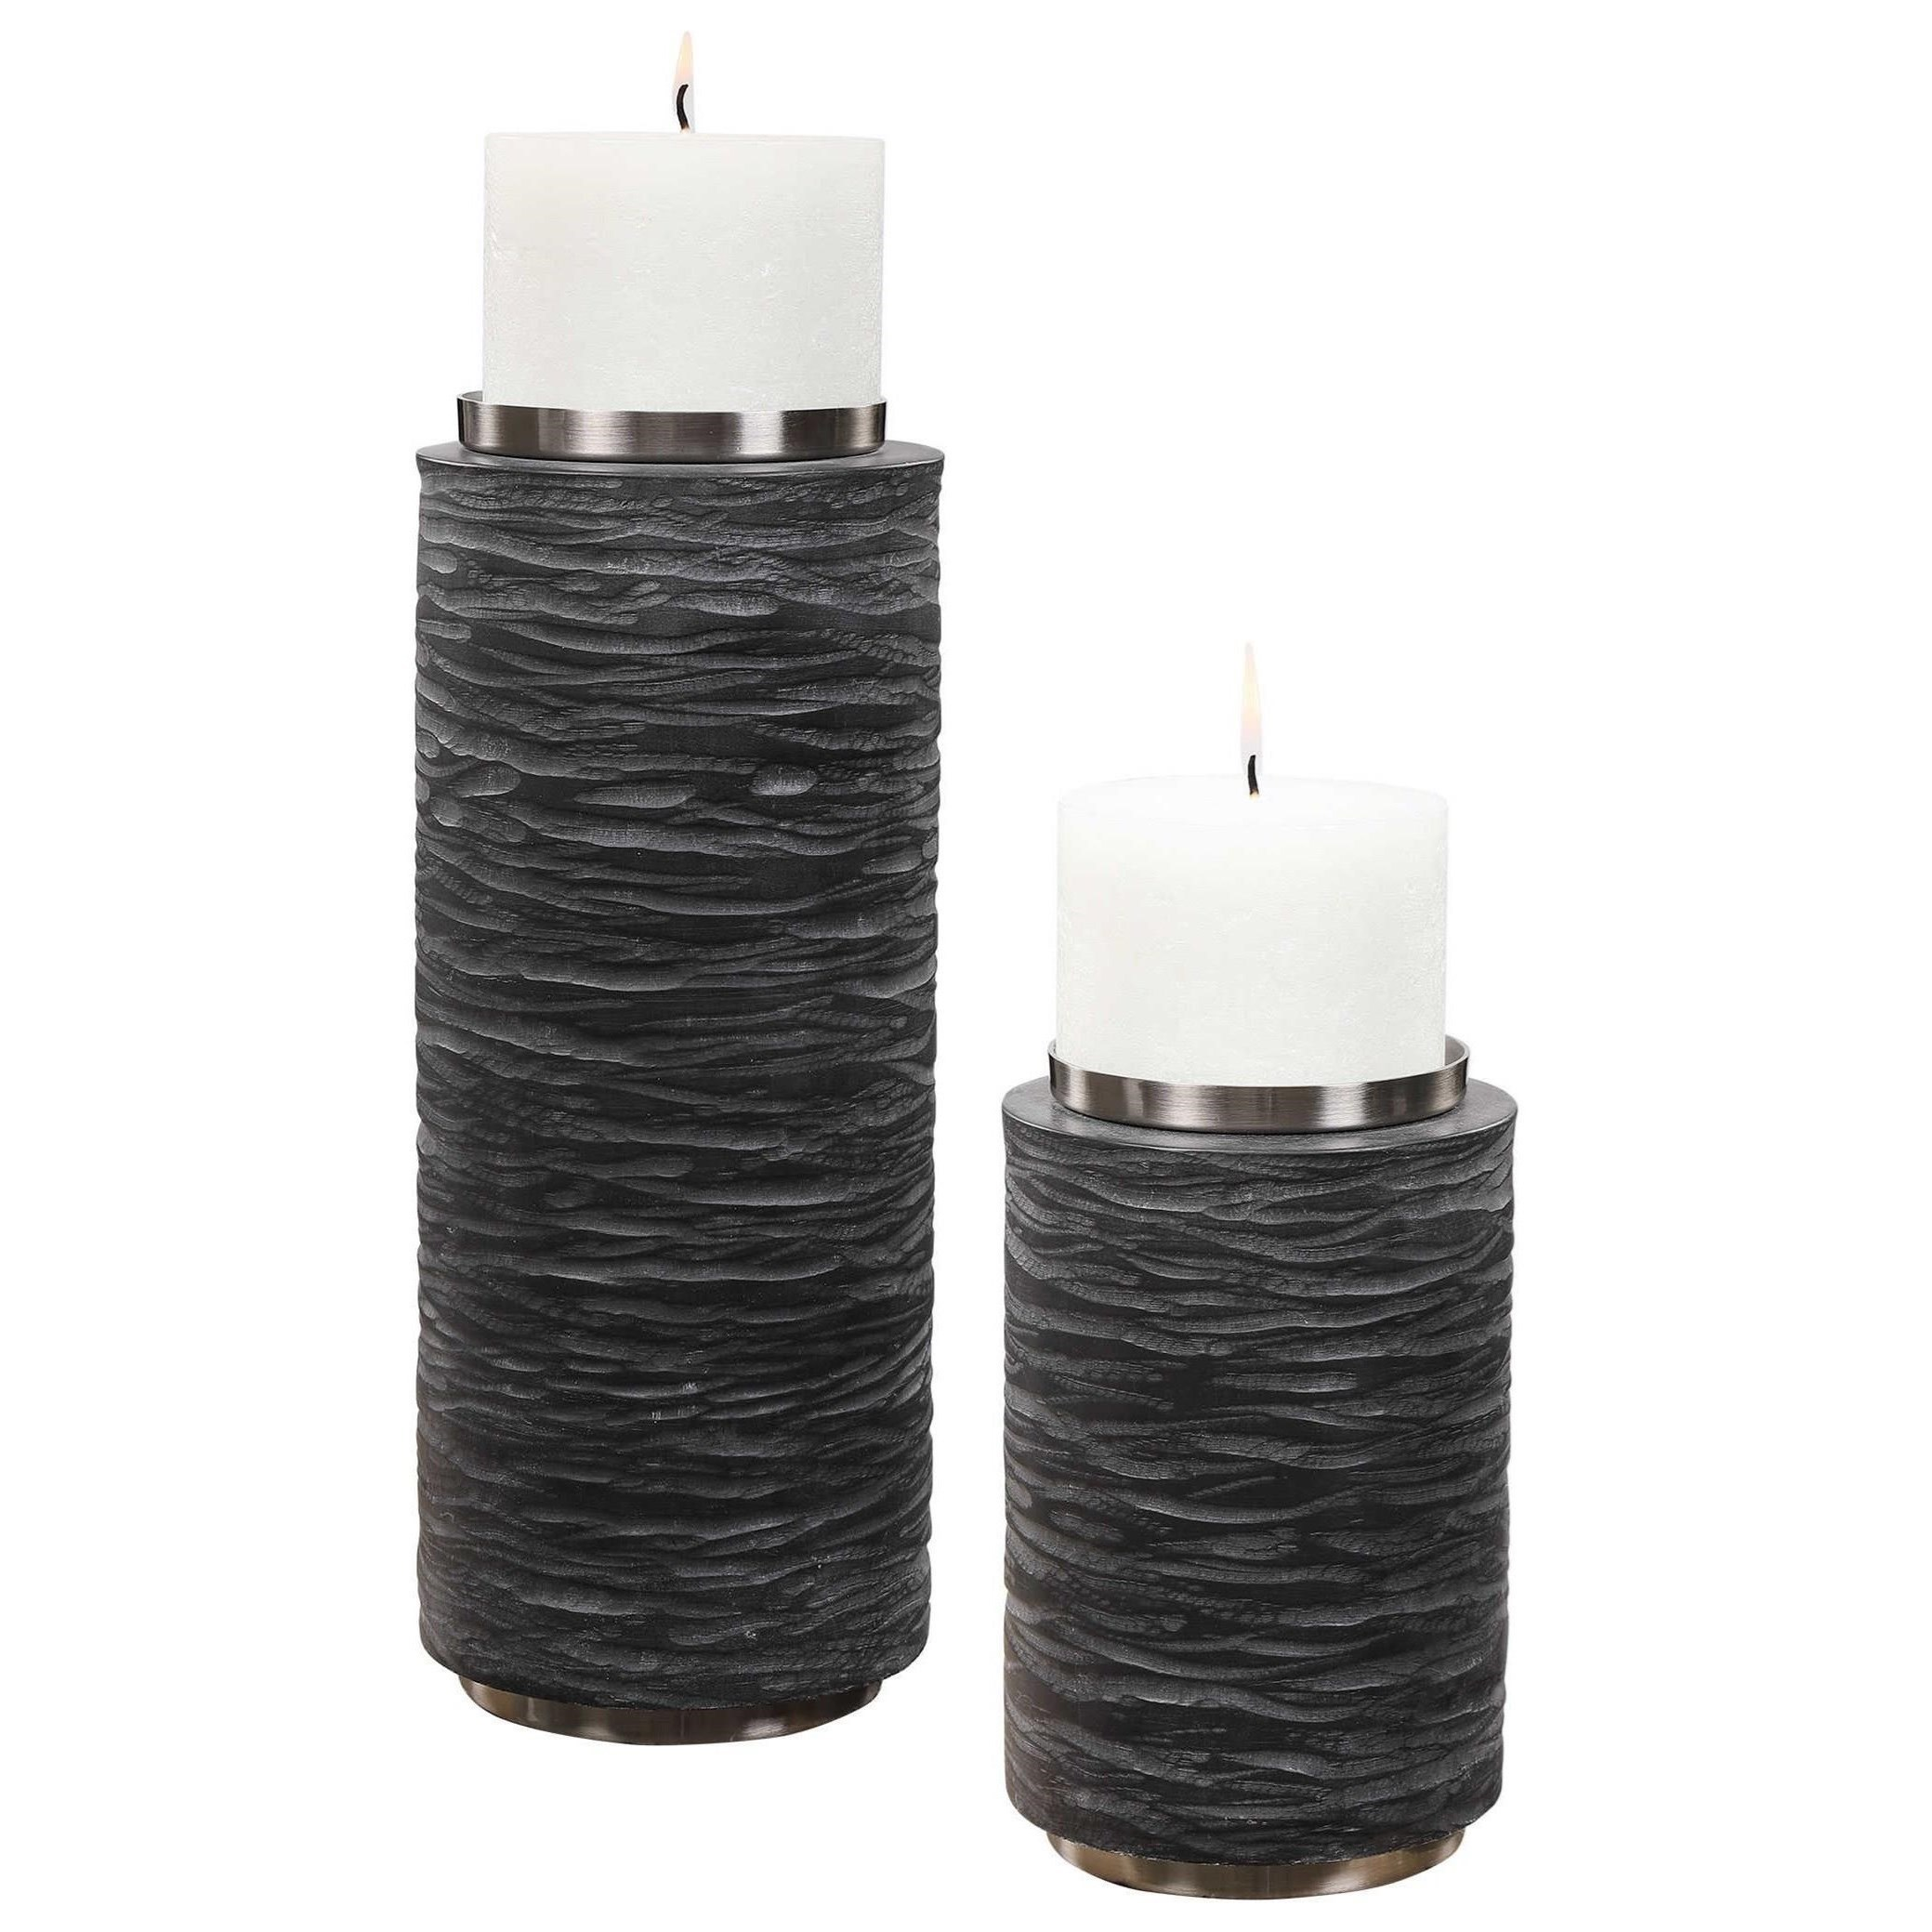 Accessories - Candle Holders Stone Gray Candleholders, S/2 by Uttermost at Furniture and ApplianceMart